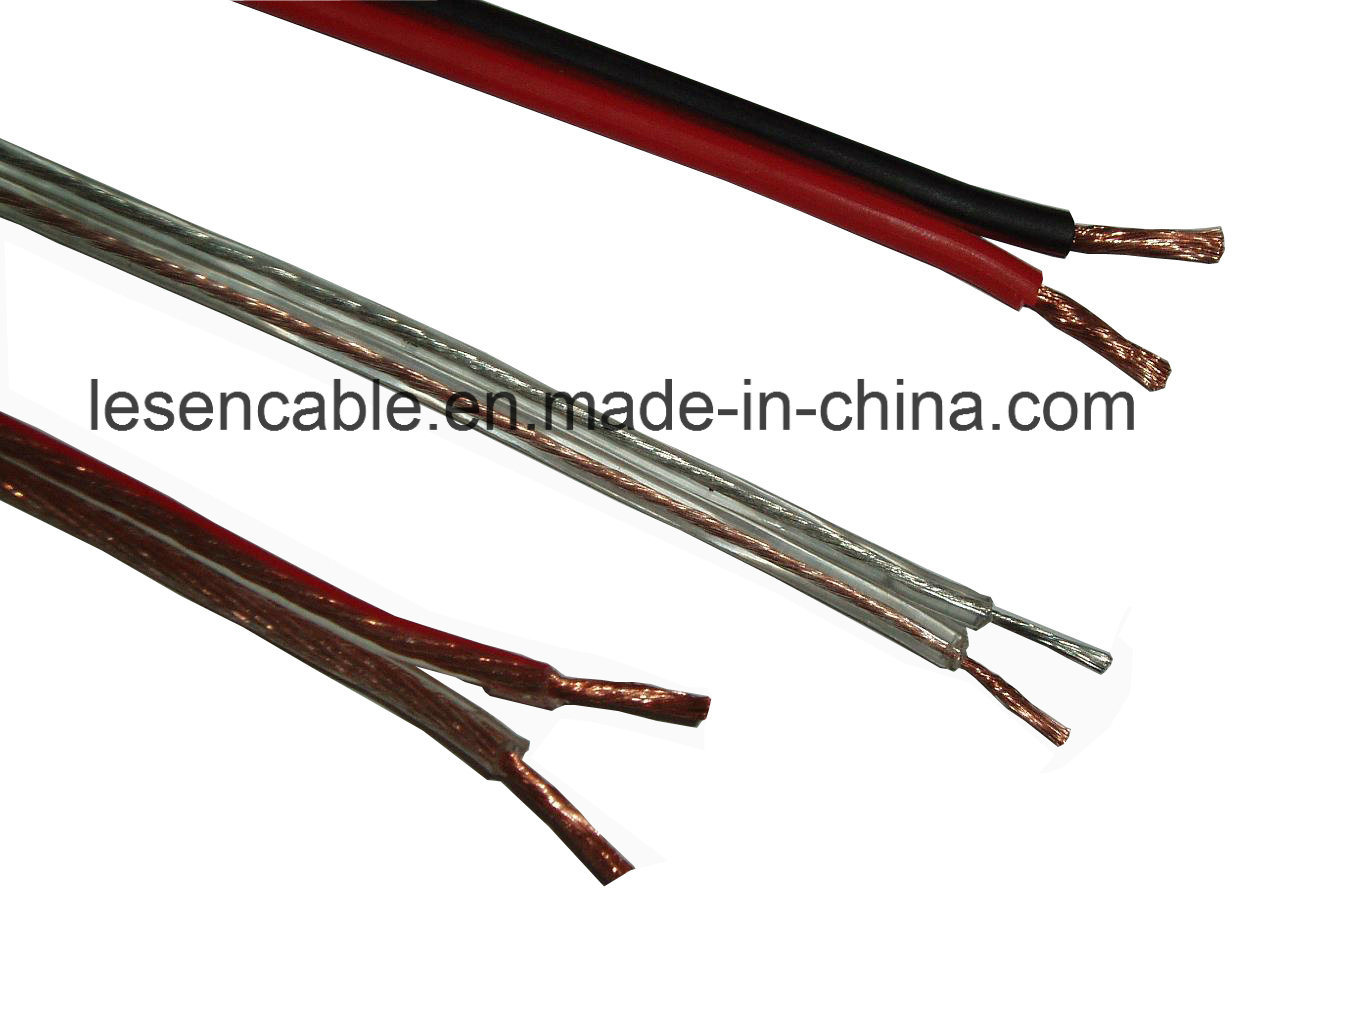 Transparent Speaker Cable for Audio Device/Speaker/Electrical Equipment, CE Certified